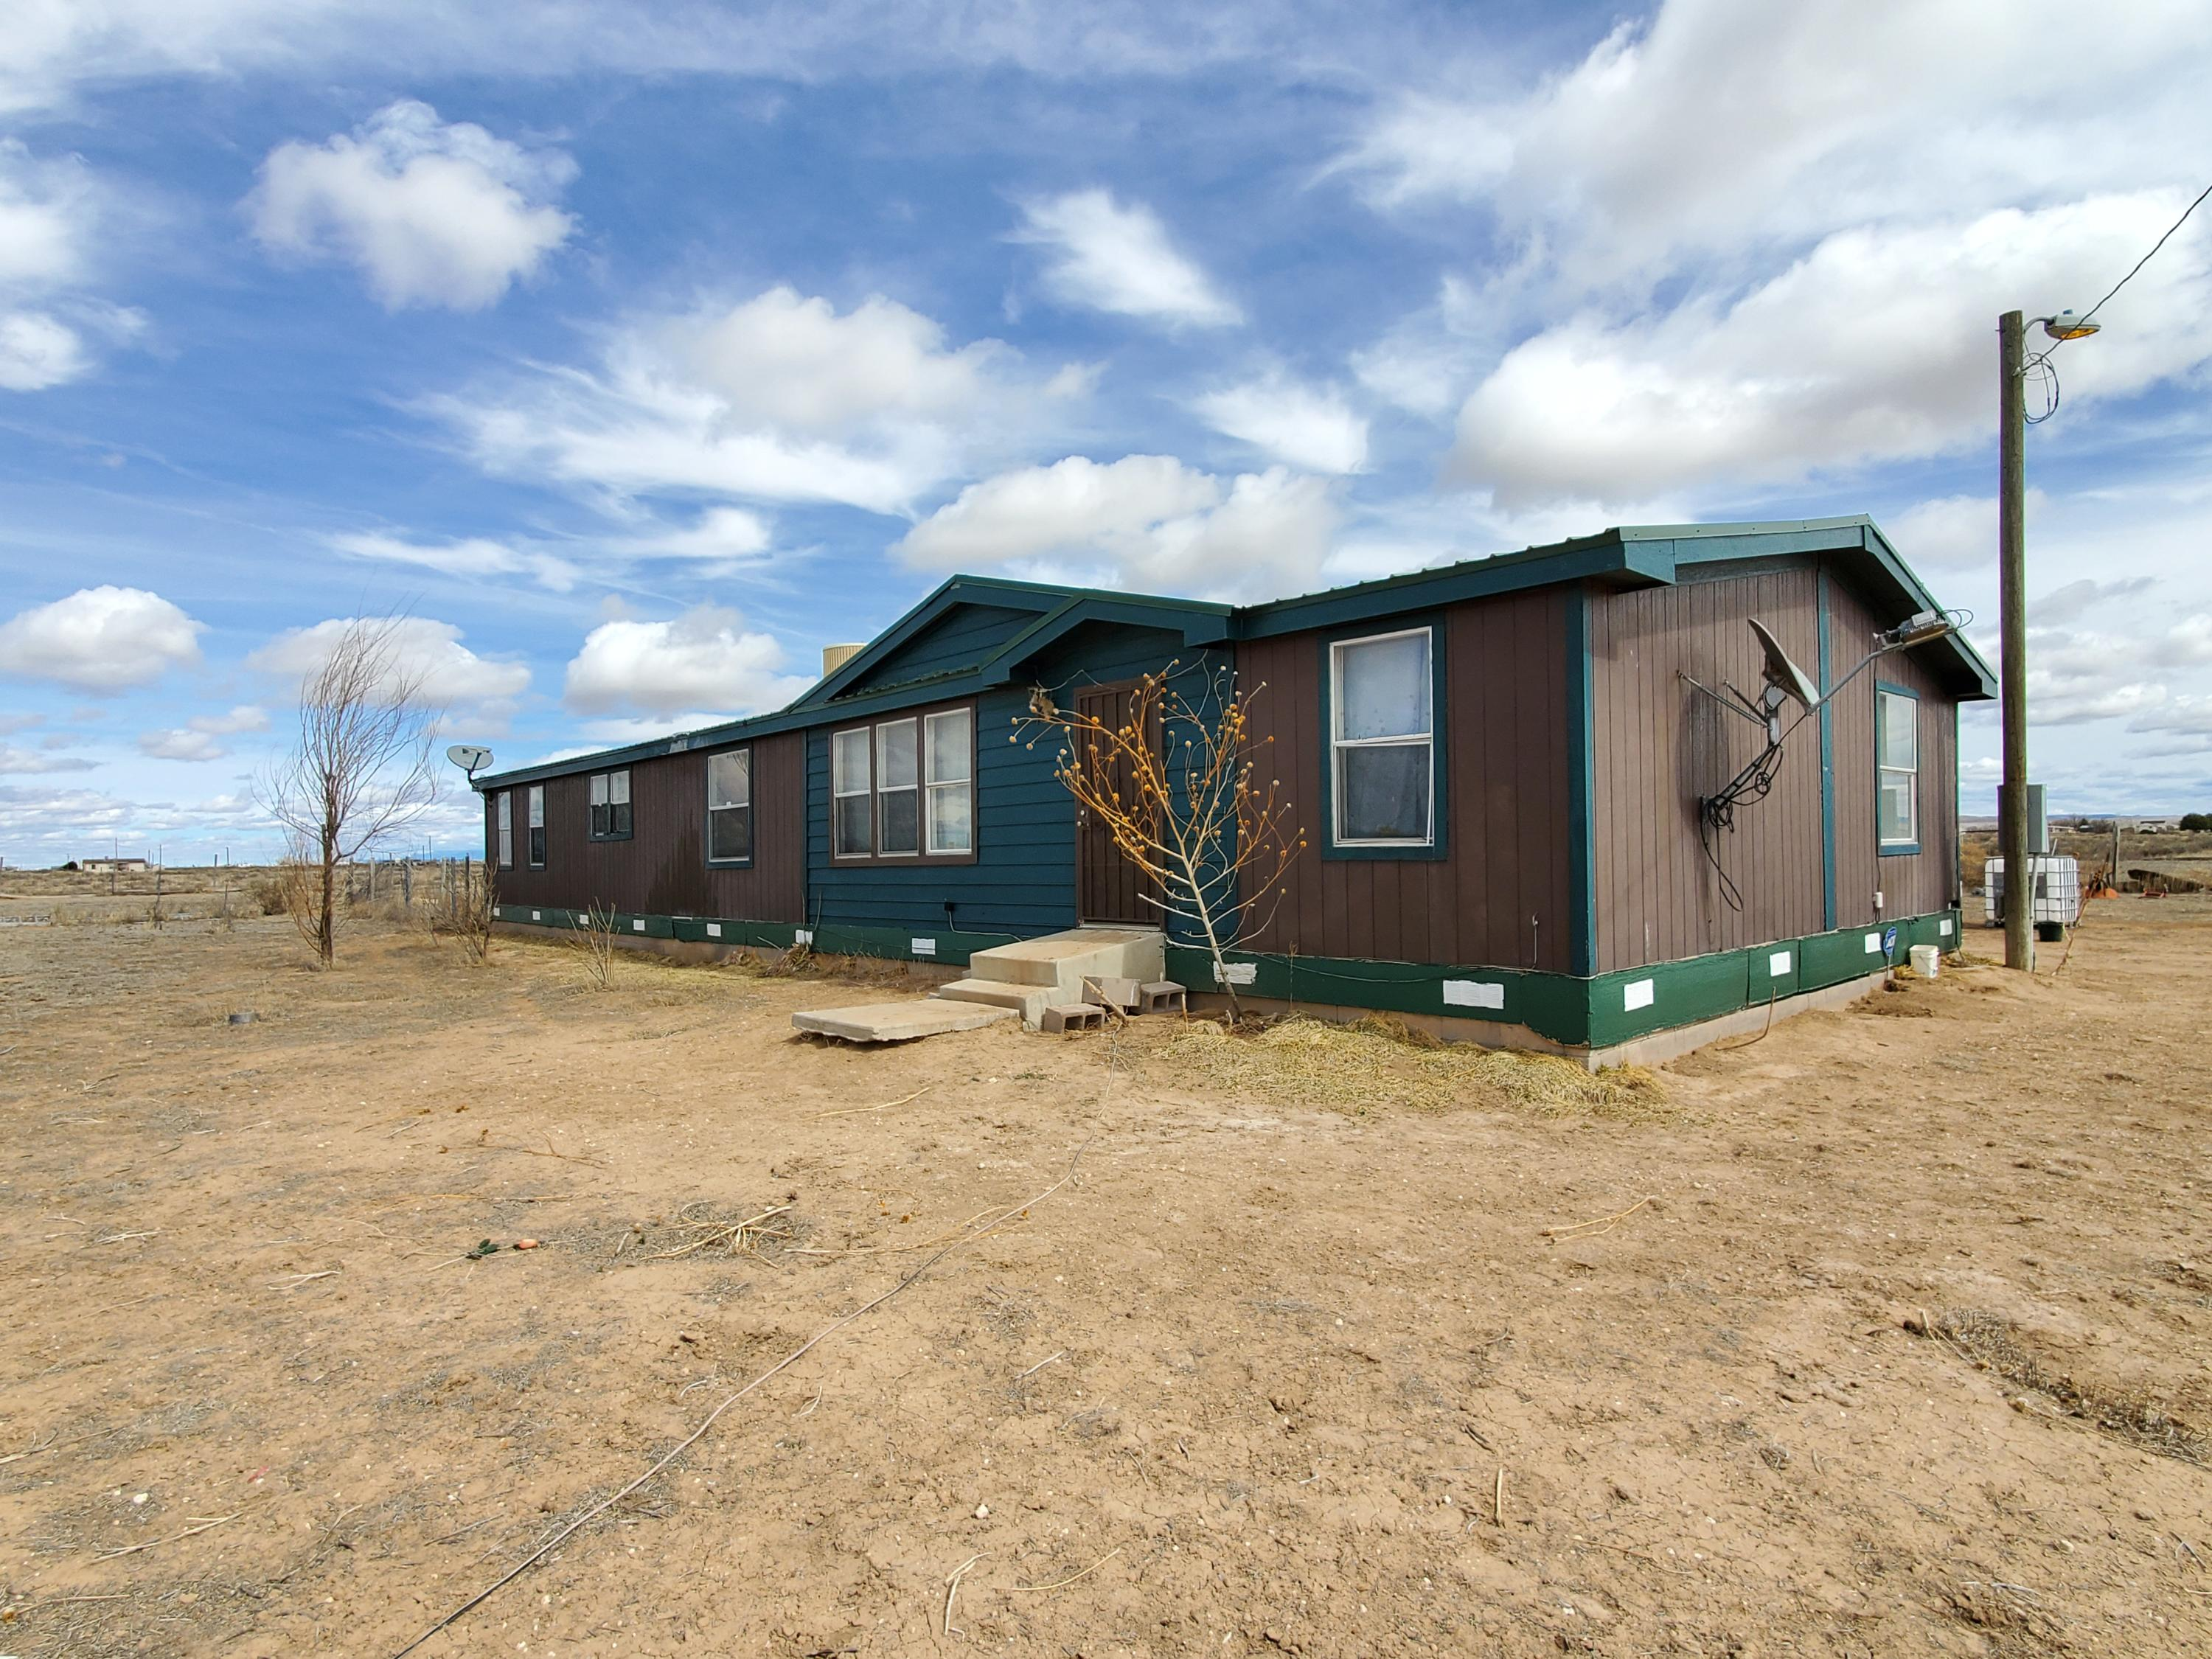 67 Hermosa, Moriarty, NM 87035 - Moriarty, NM real estate listing